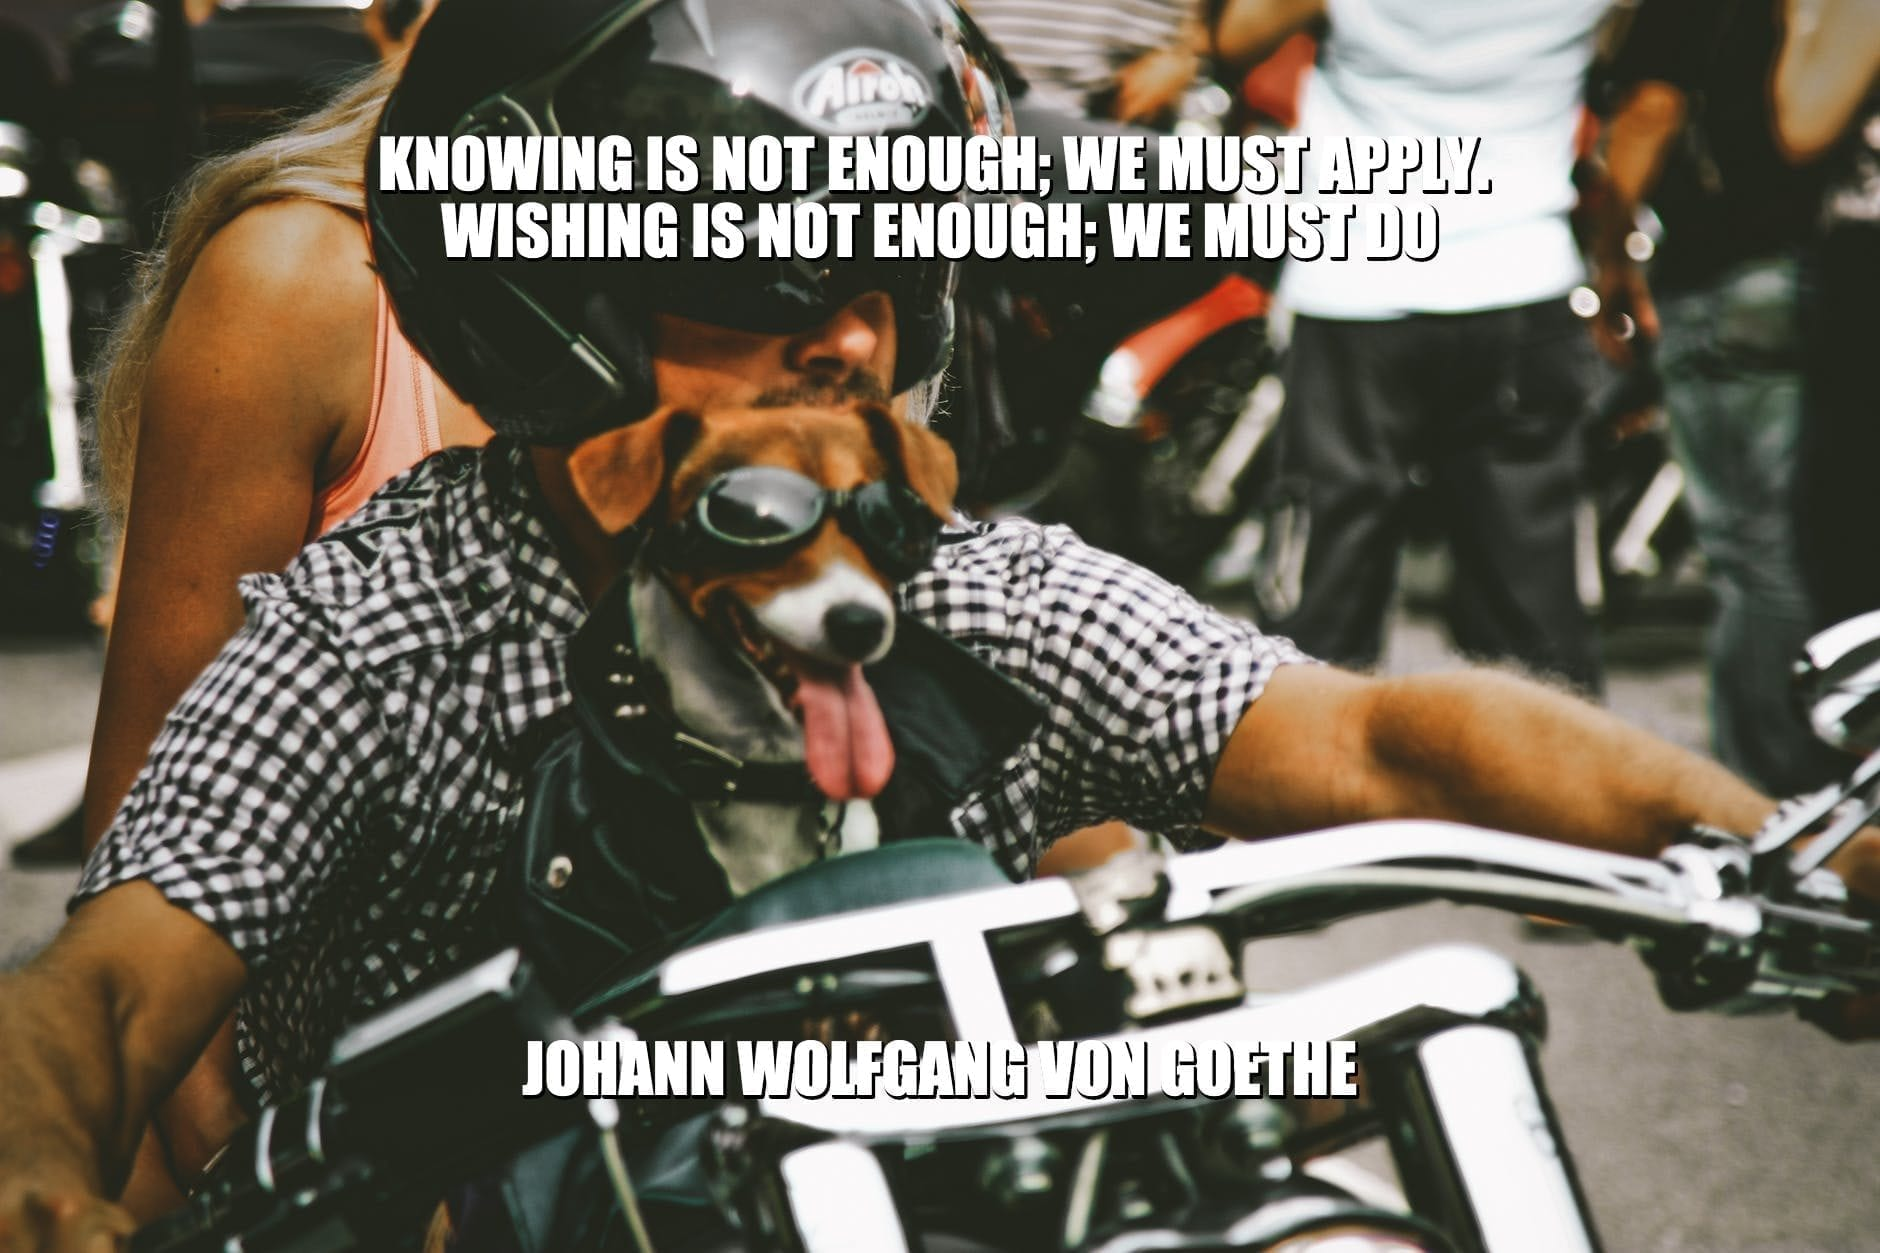 Daily Quotes: Knowing Is Not Enough; We Must Apply. Wishing Is Not Enough; We Must Do petworldglobal.com